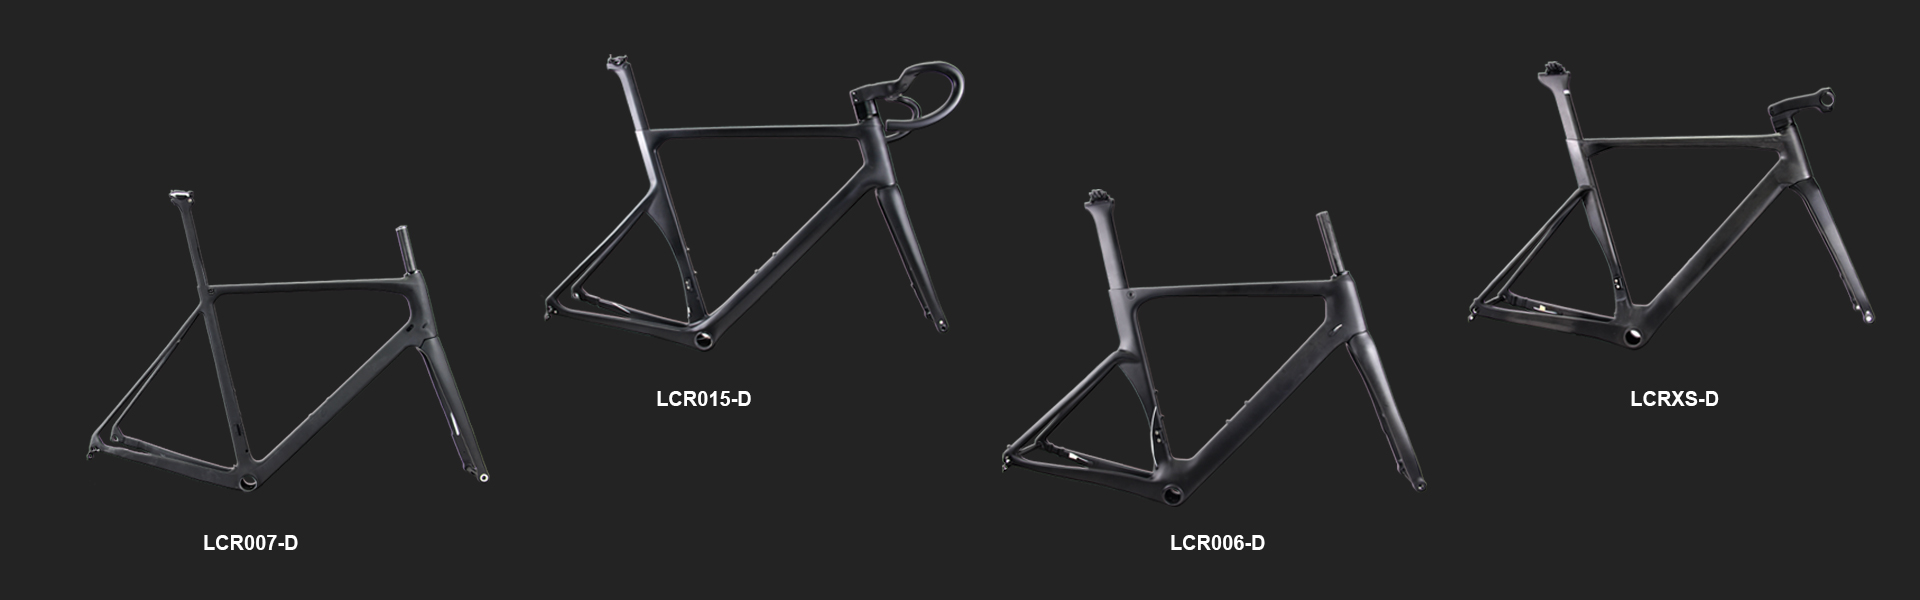 2019 lightcarbon road frame summary